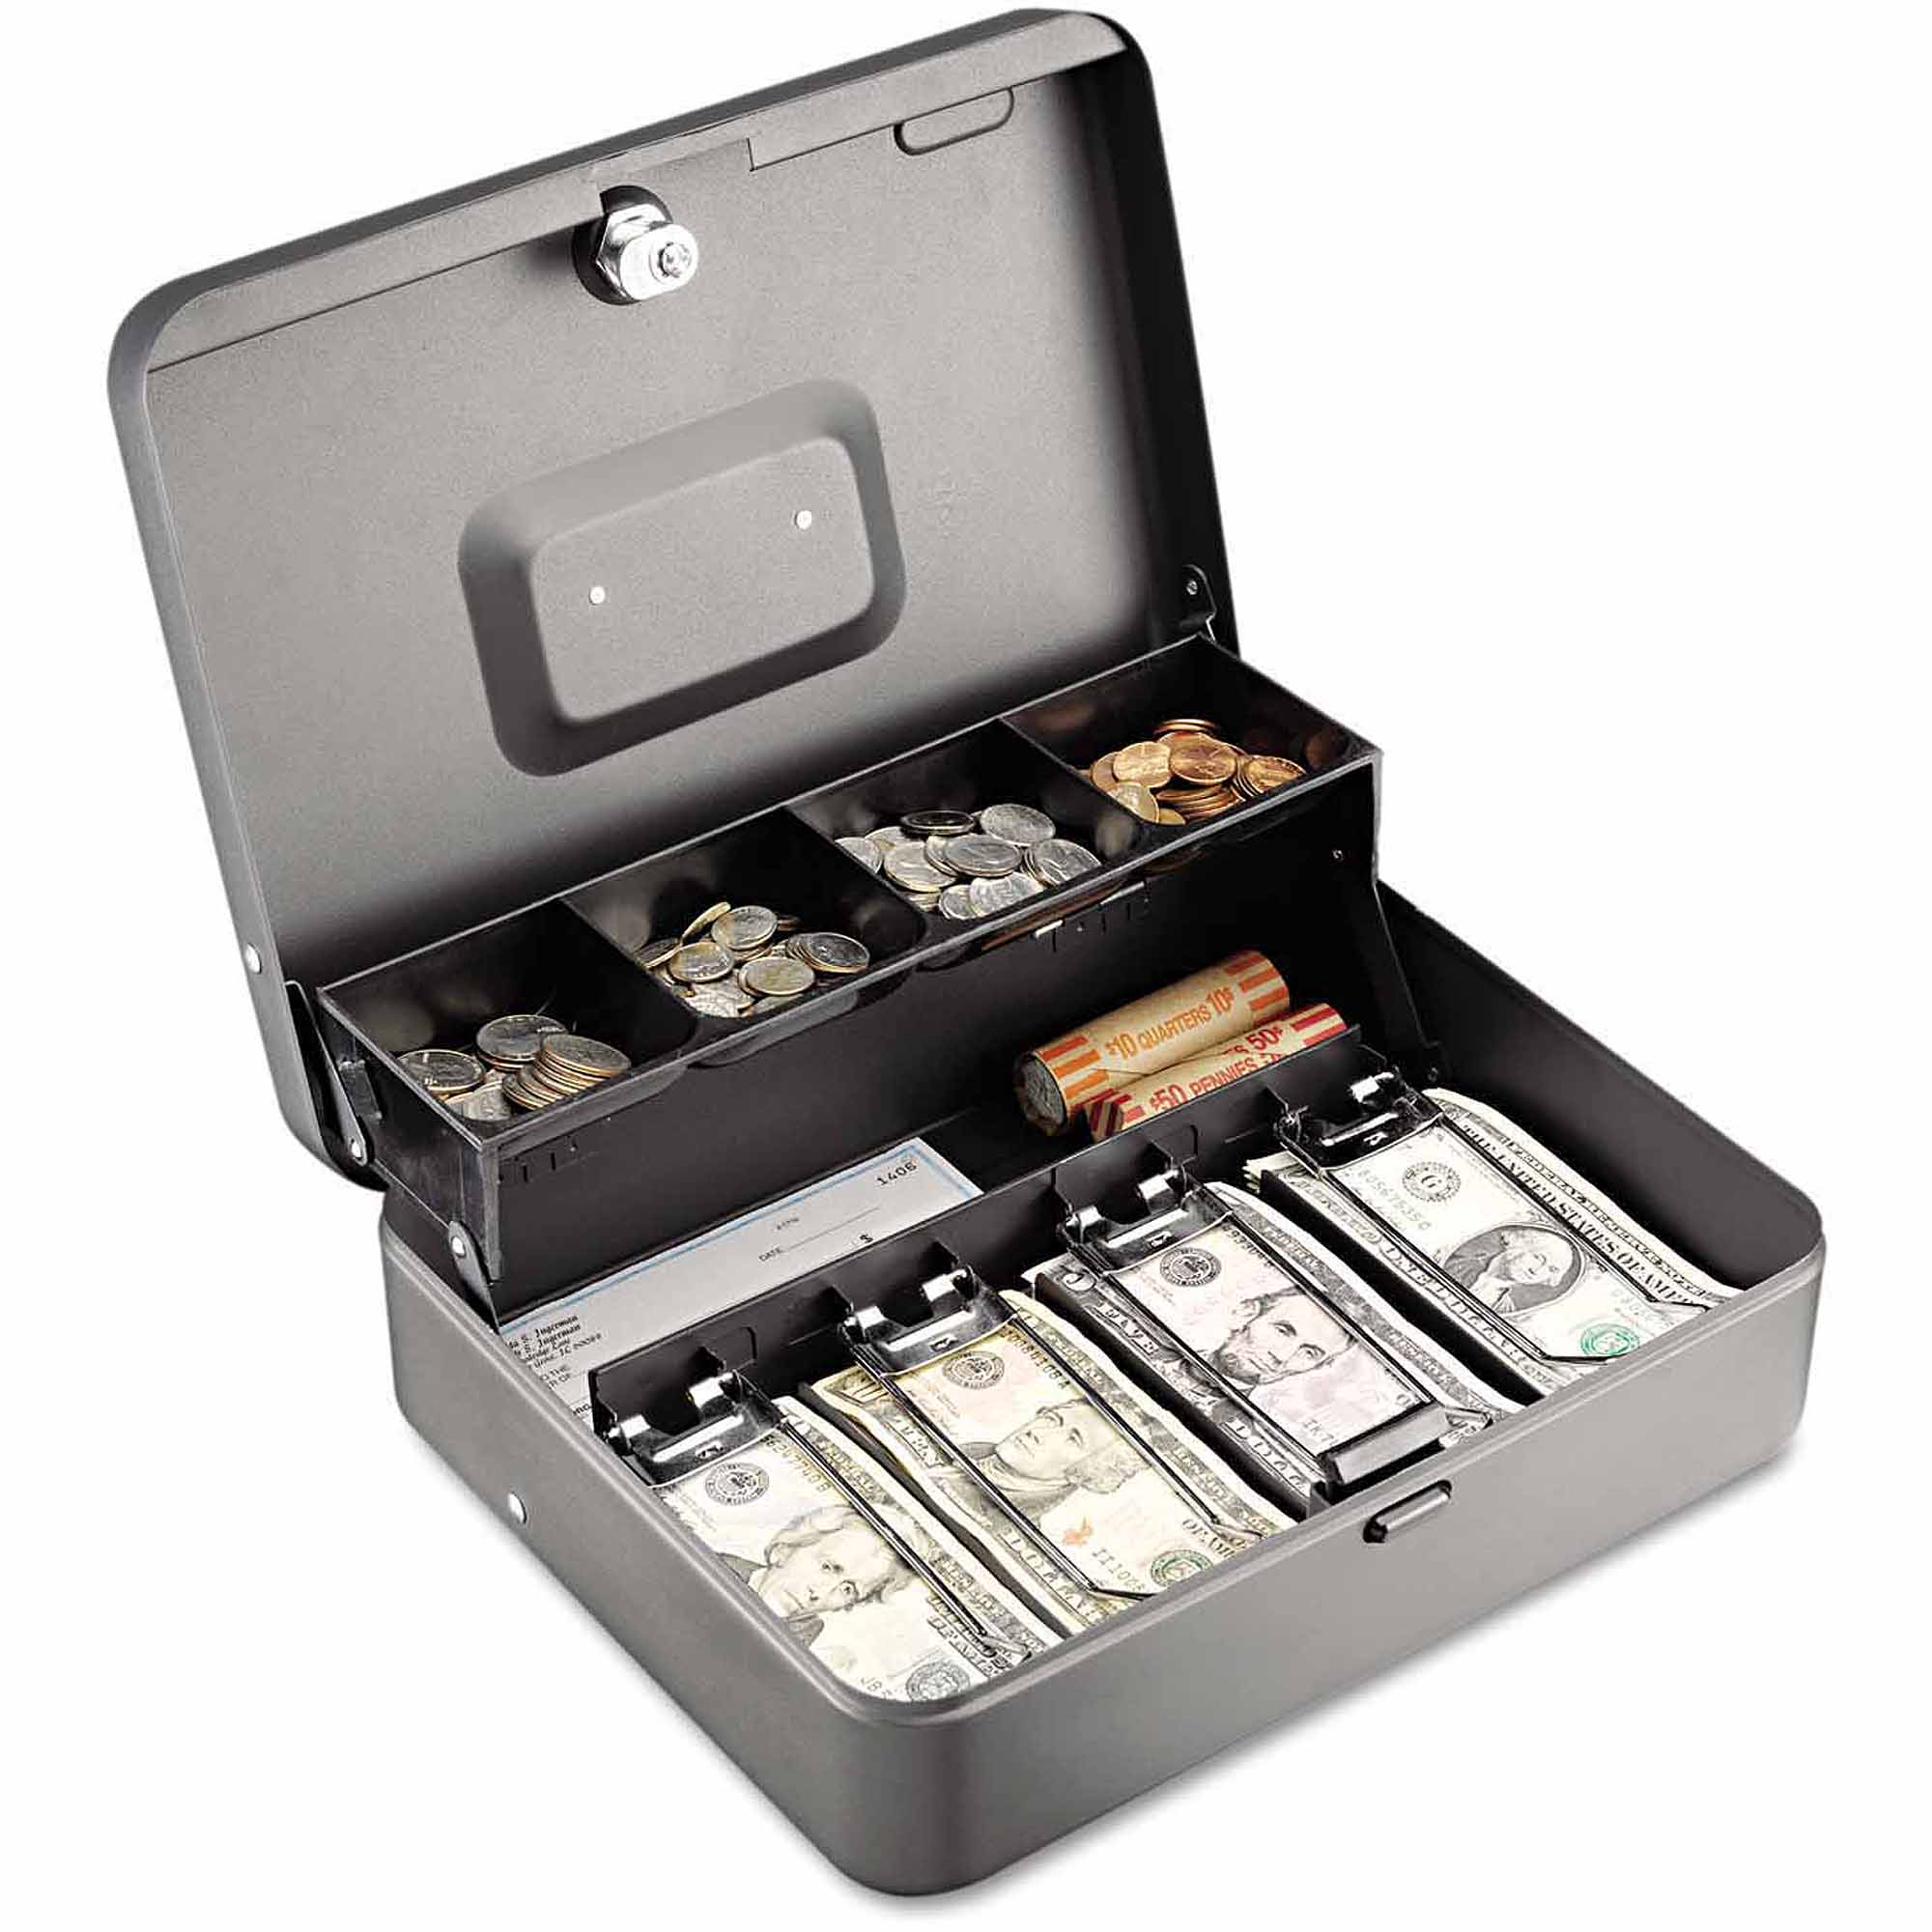 "SteelMaster Tiered Cash Box with Bill Weights, 12"", Cam Key Lock, Charcoal"